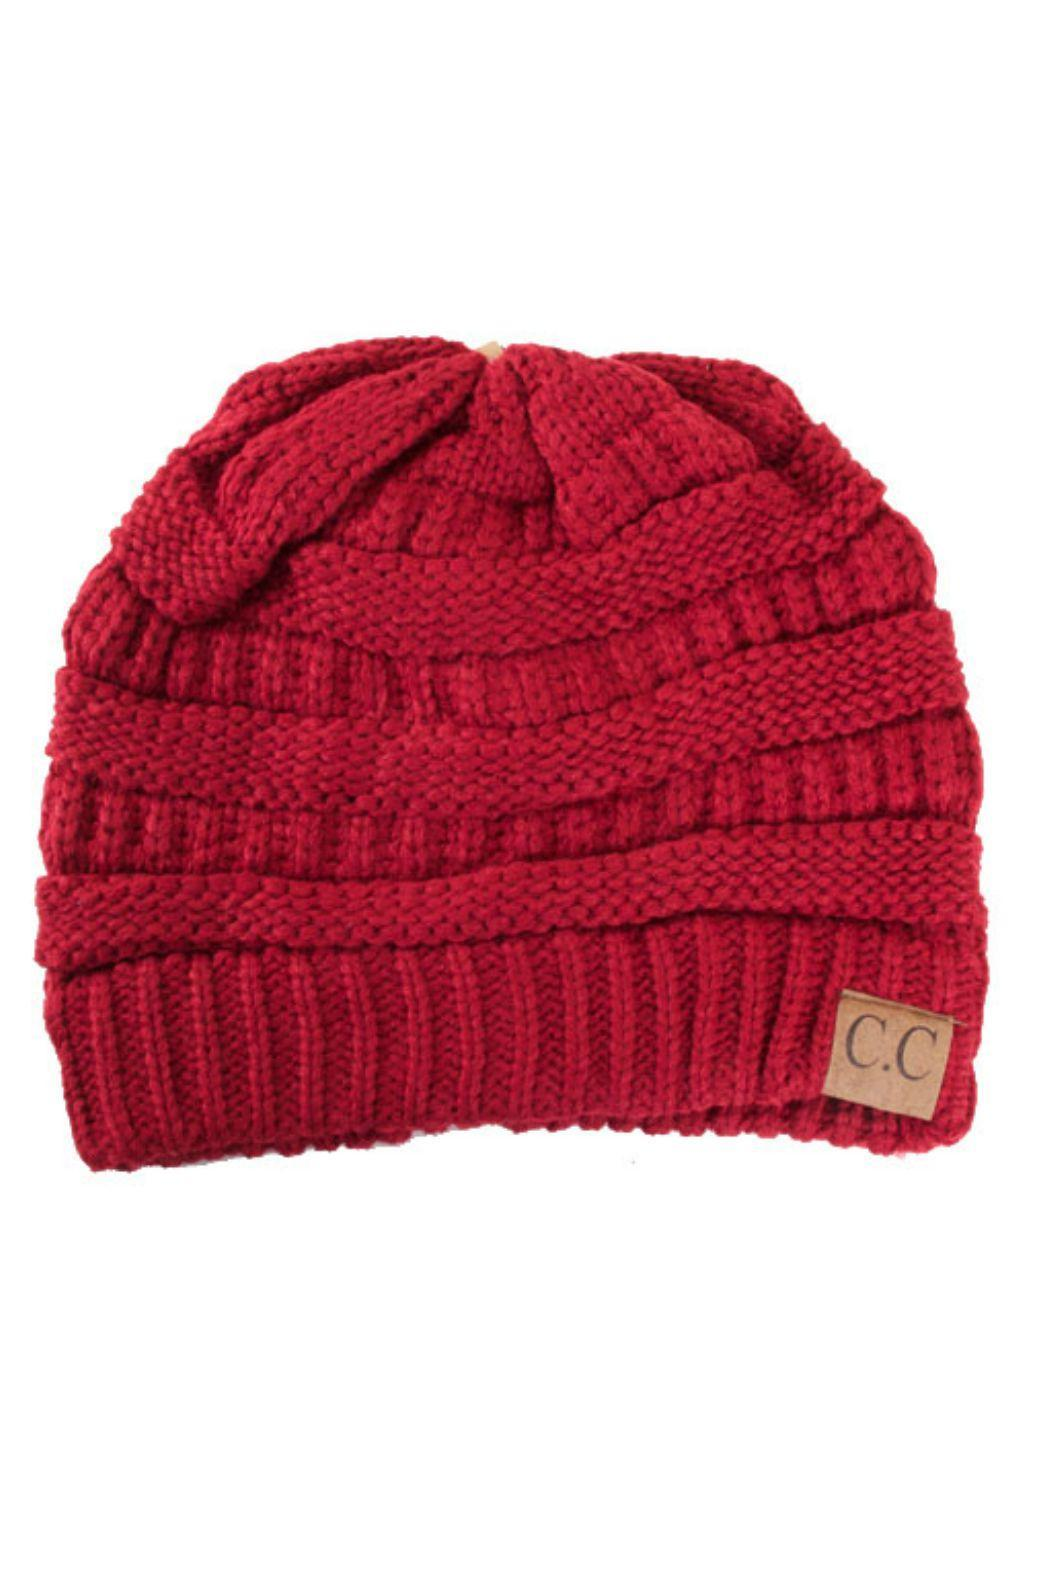 C.C. Red Slouch Beanie - Main Image